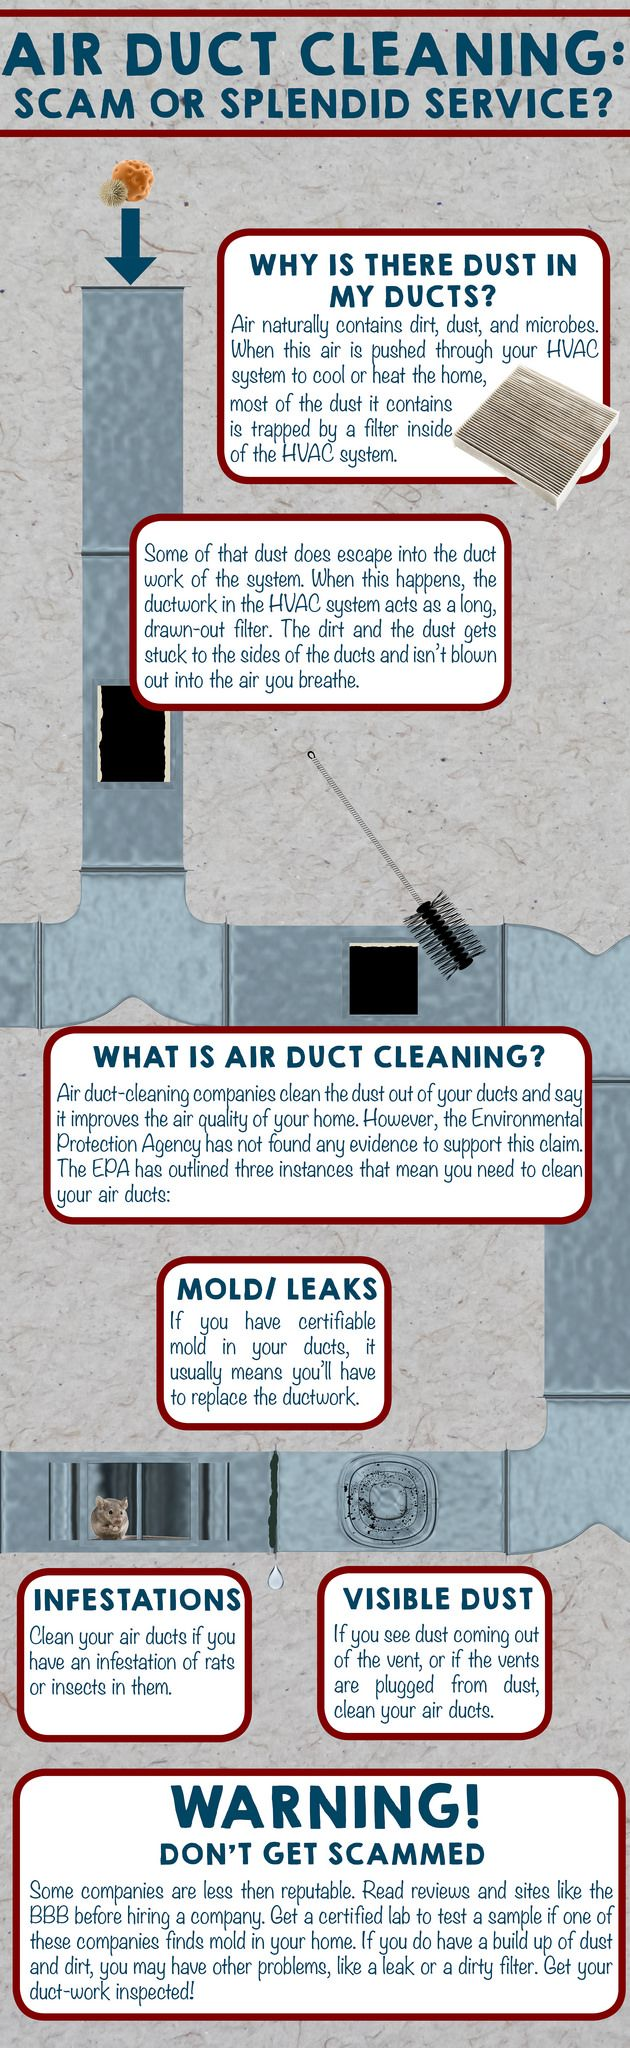 Air duct cleaning! Why you need it and what it is! Call the #BELOMAN!